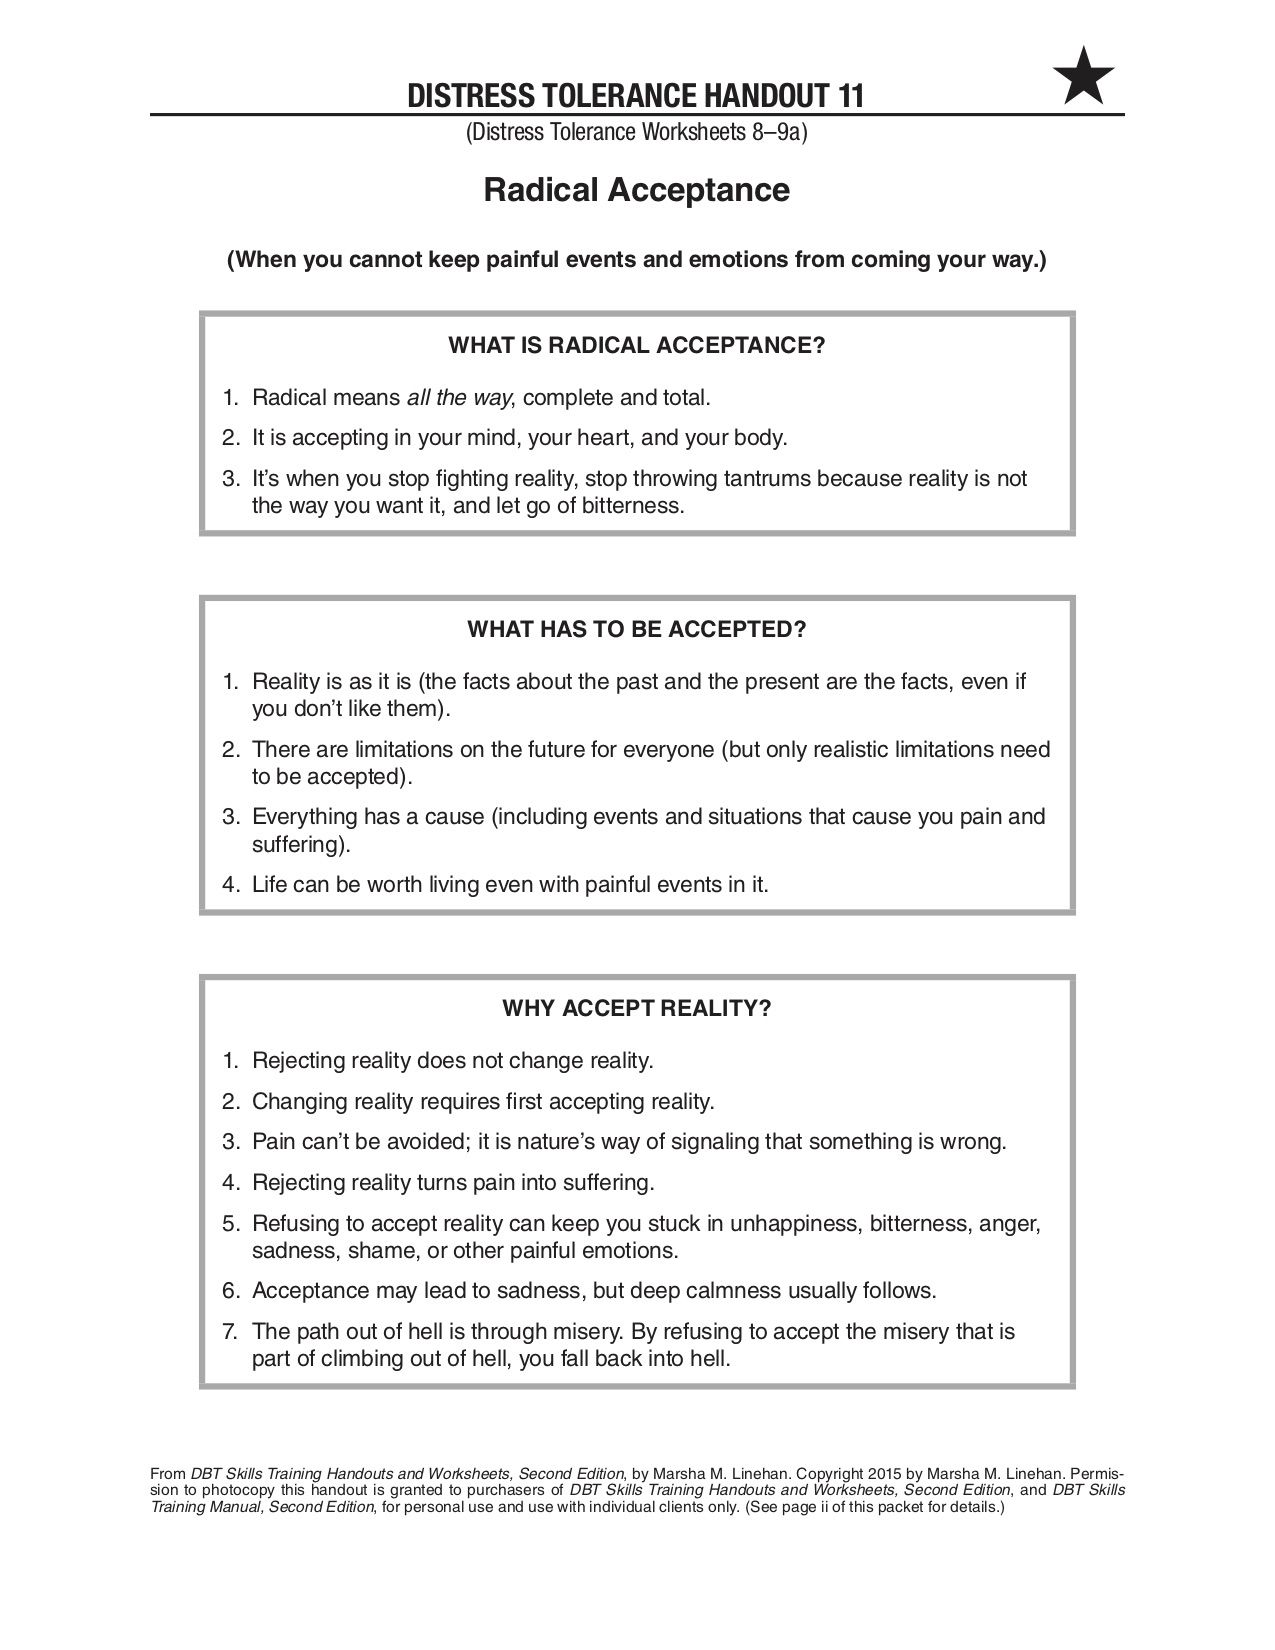 Pin By Morrison Clinic On Coping Skills Worksheets And Journaling Radical Acceptance Distress Tolerance Dialectical Behavior Therapy